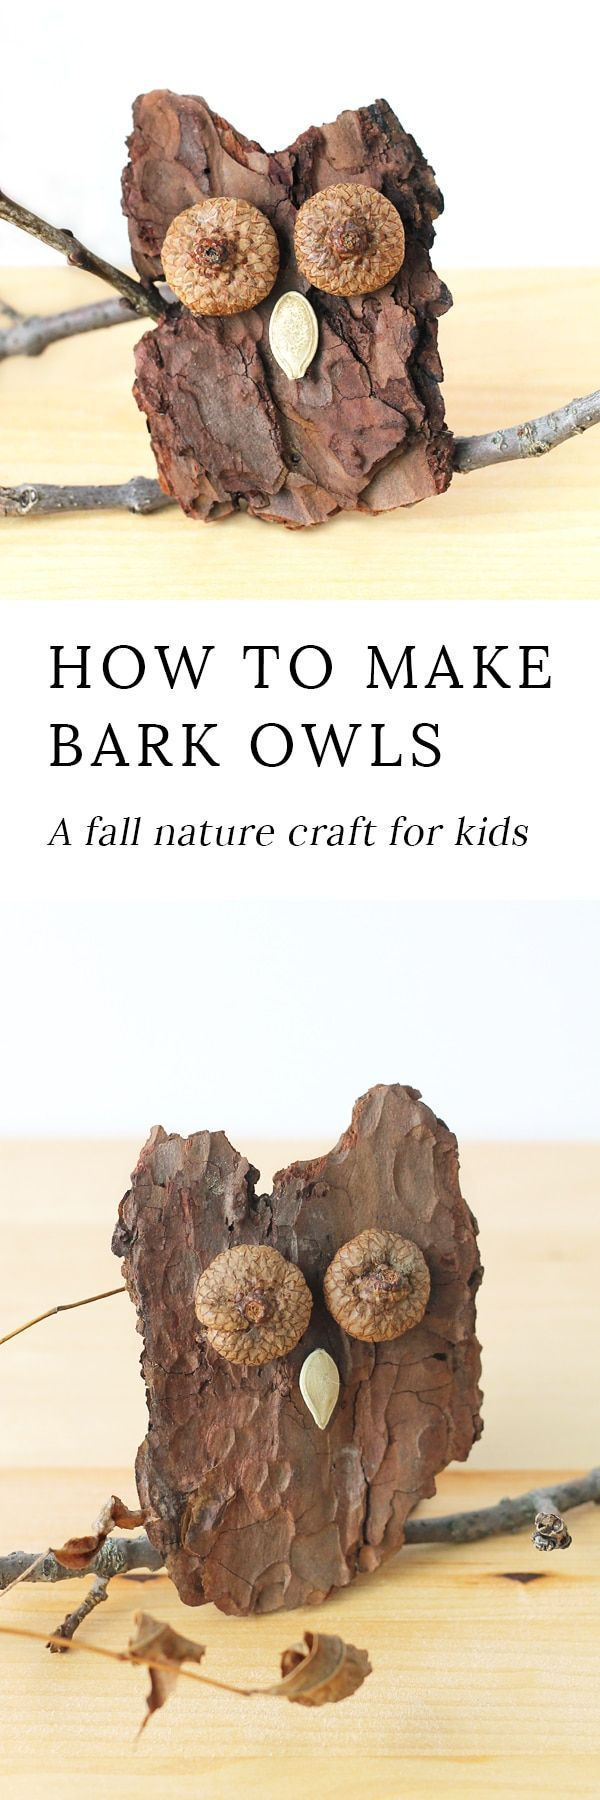 Photo of How to Make Bark Owls